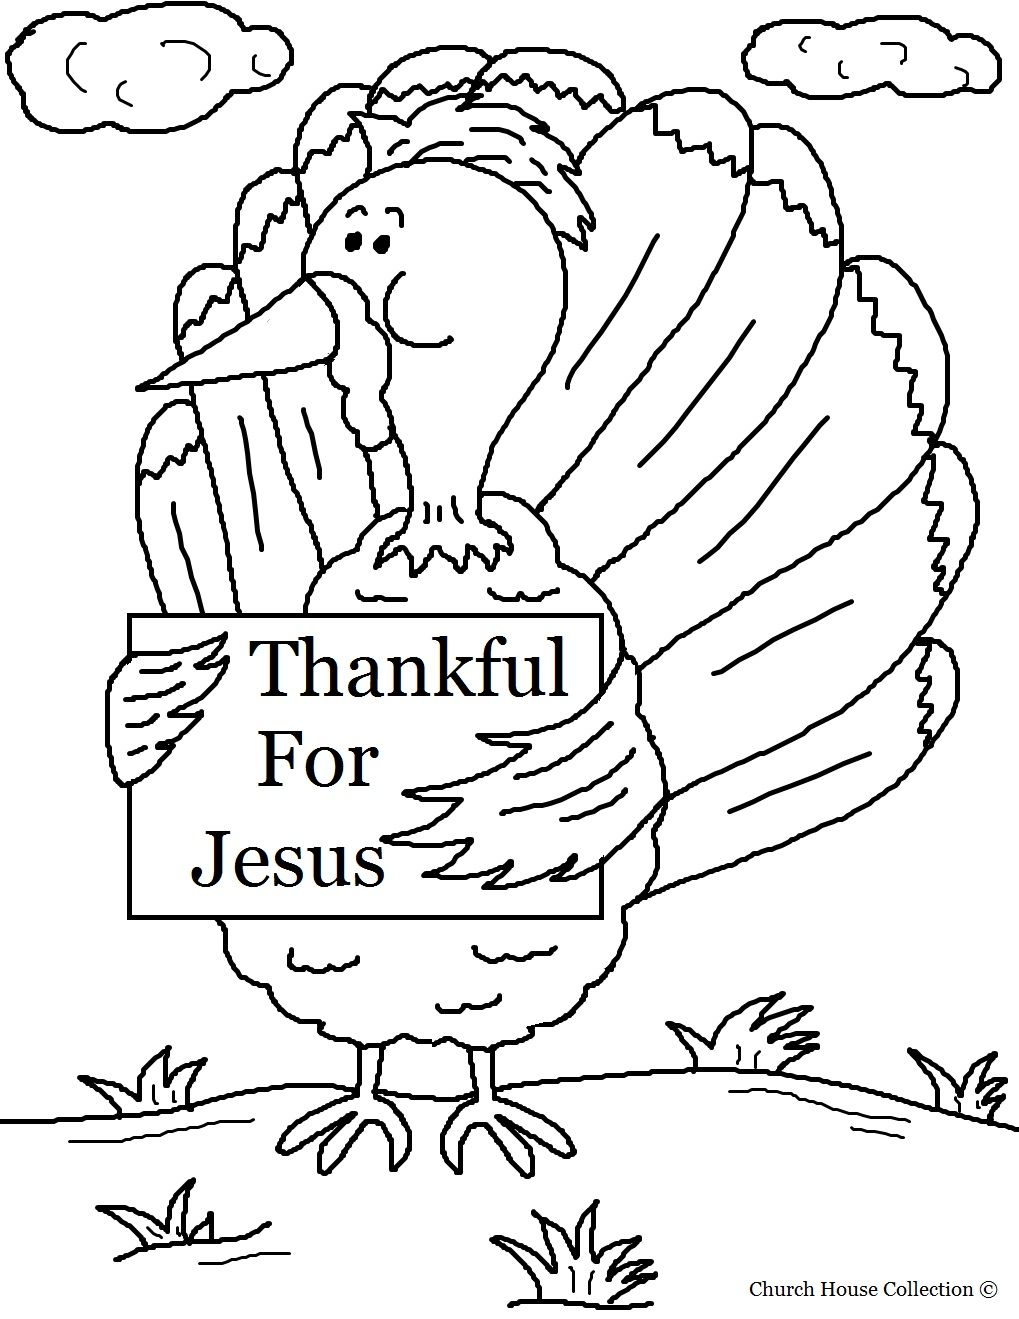 Turkey Holding Sign Thankful For Jesus Coloring Page